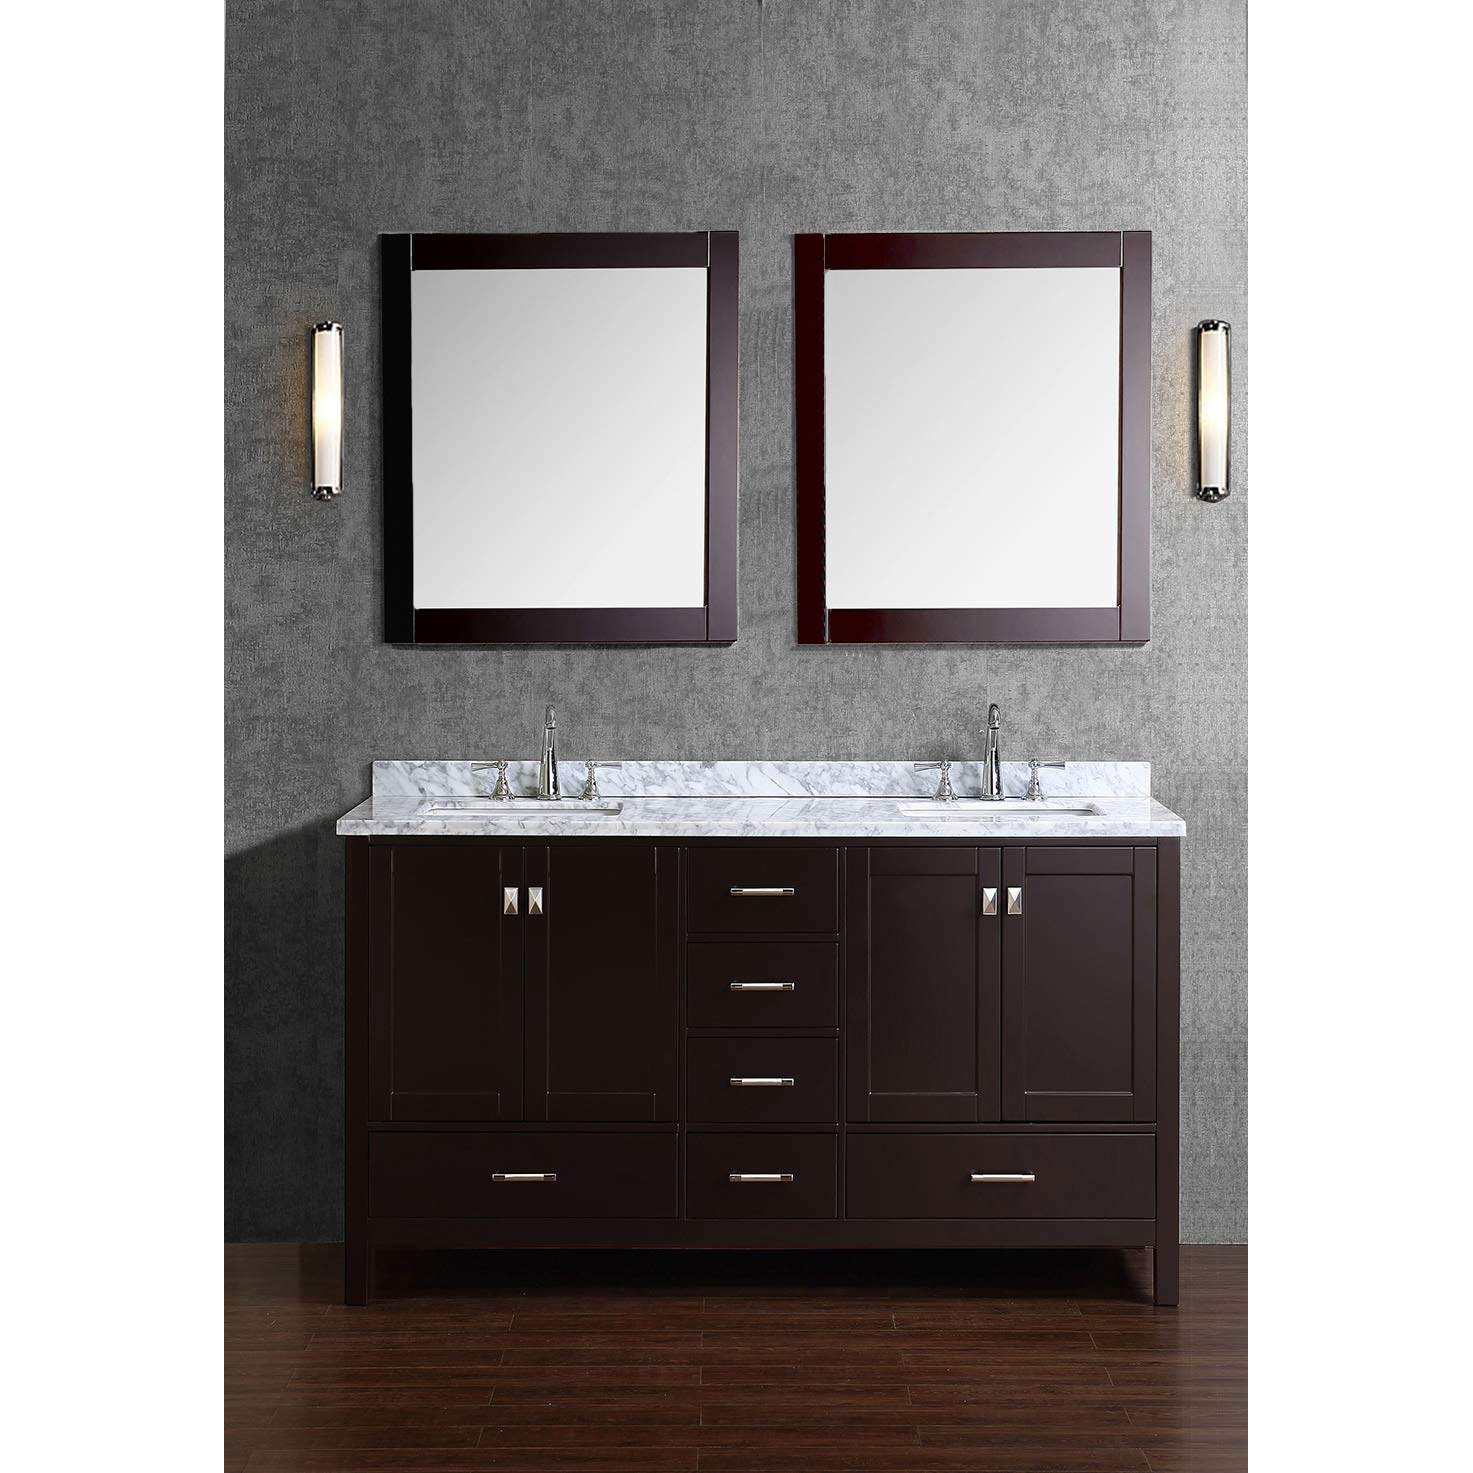 Buy vnicent 60 solid wood double bathroom vanity in espresso hm 13001 60 wmsq esp for Solid wood double sink bathroom vanity